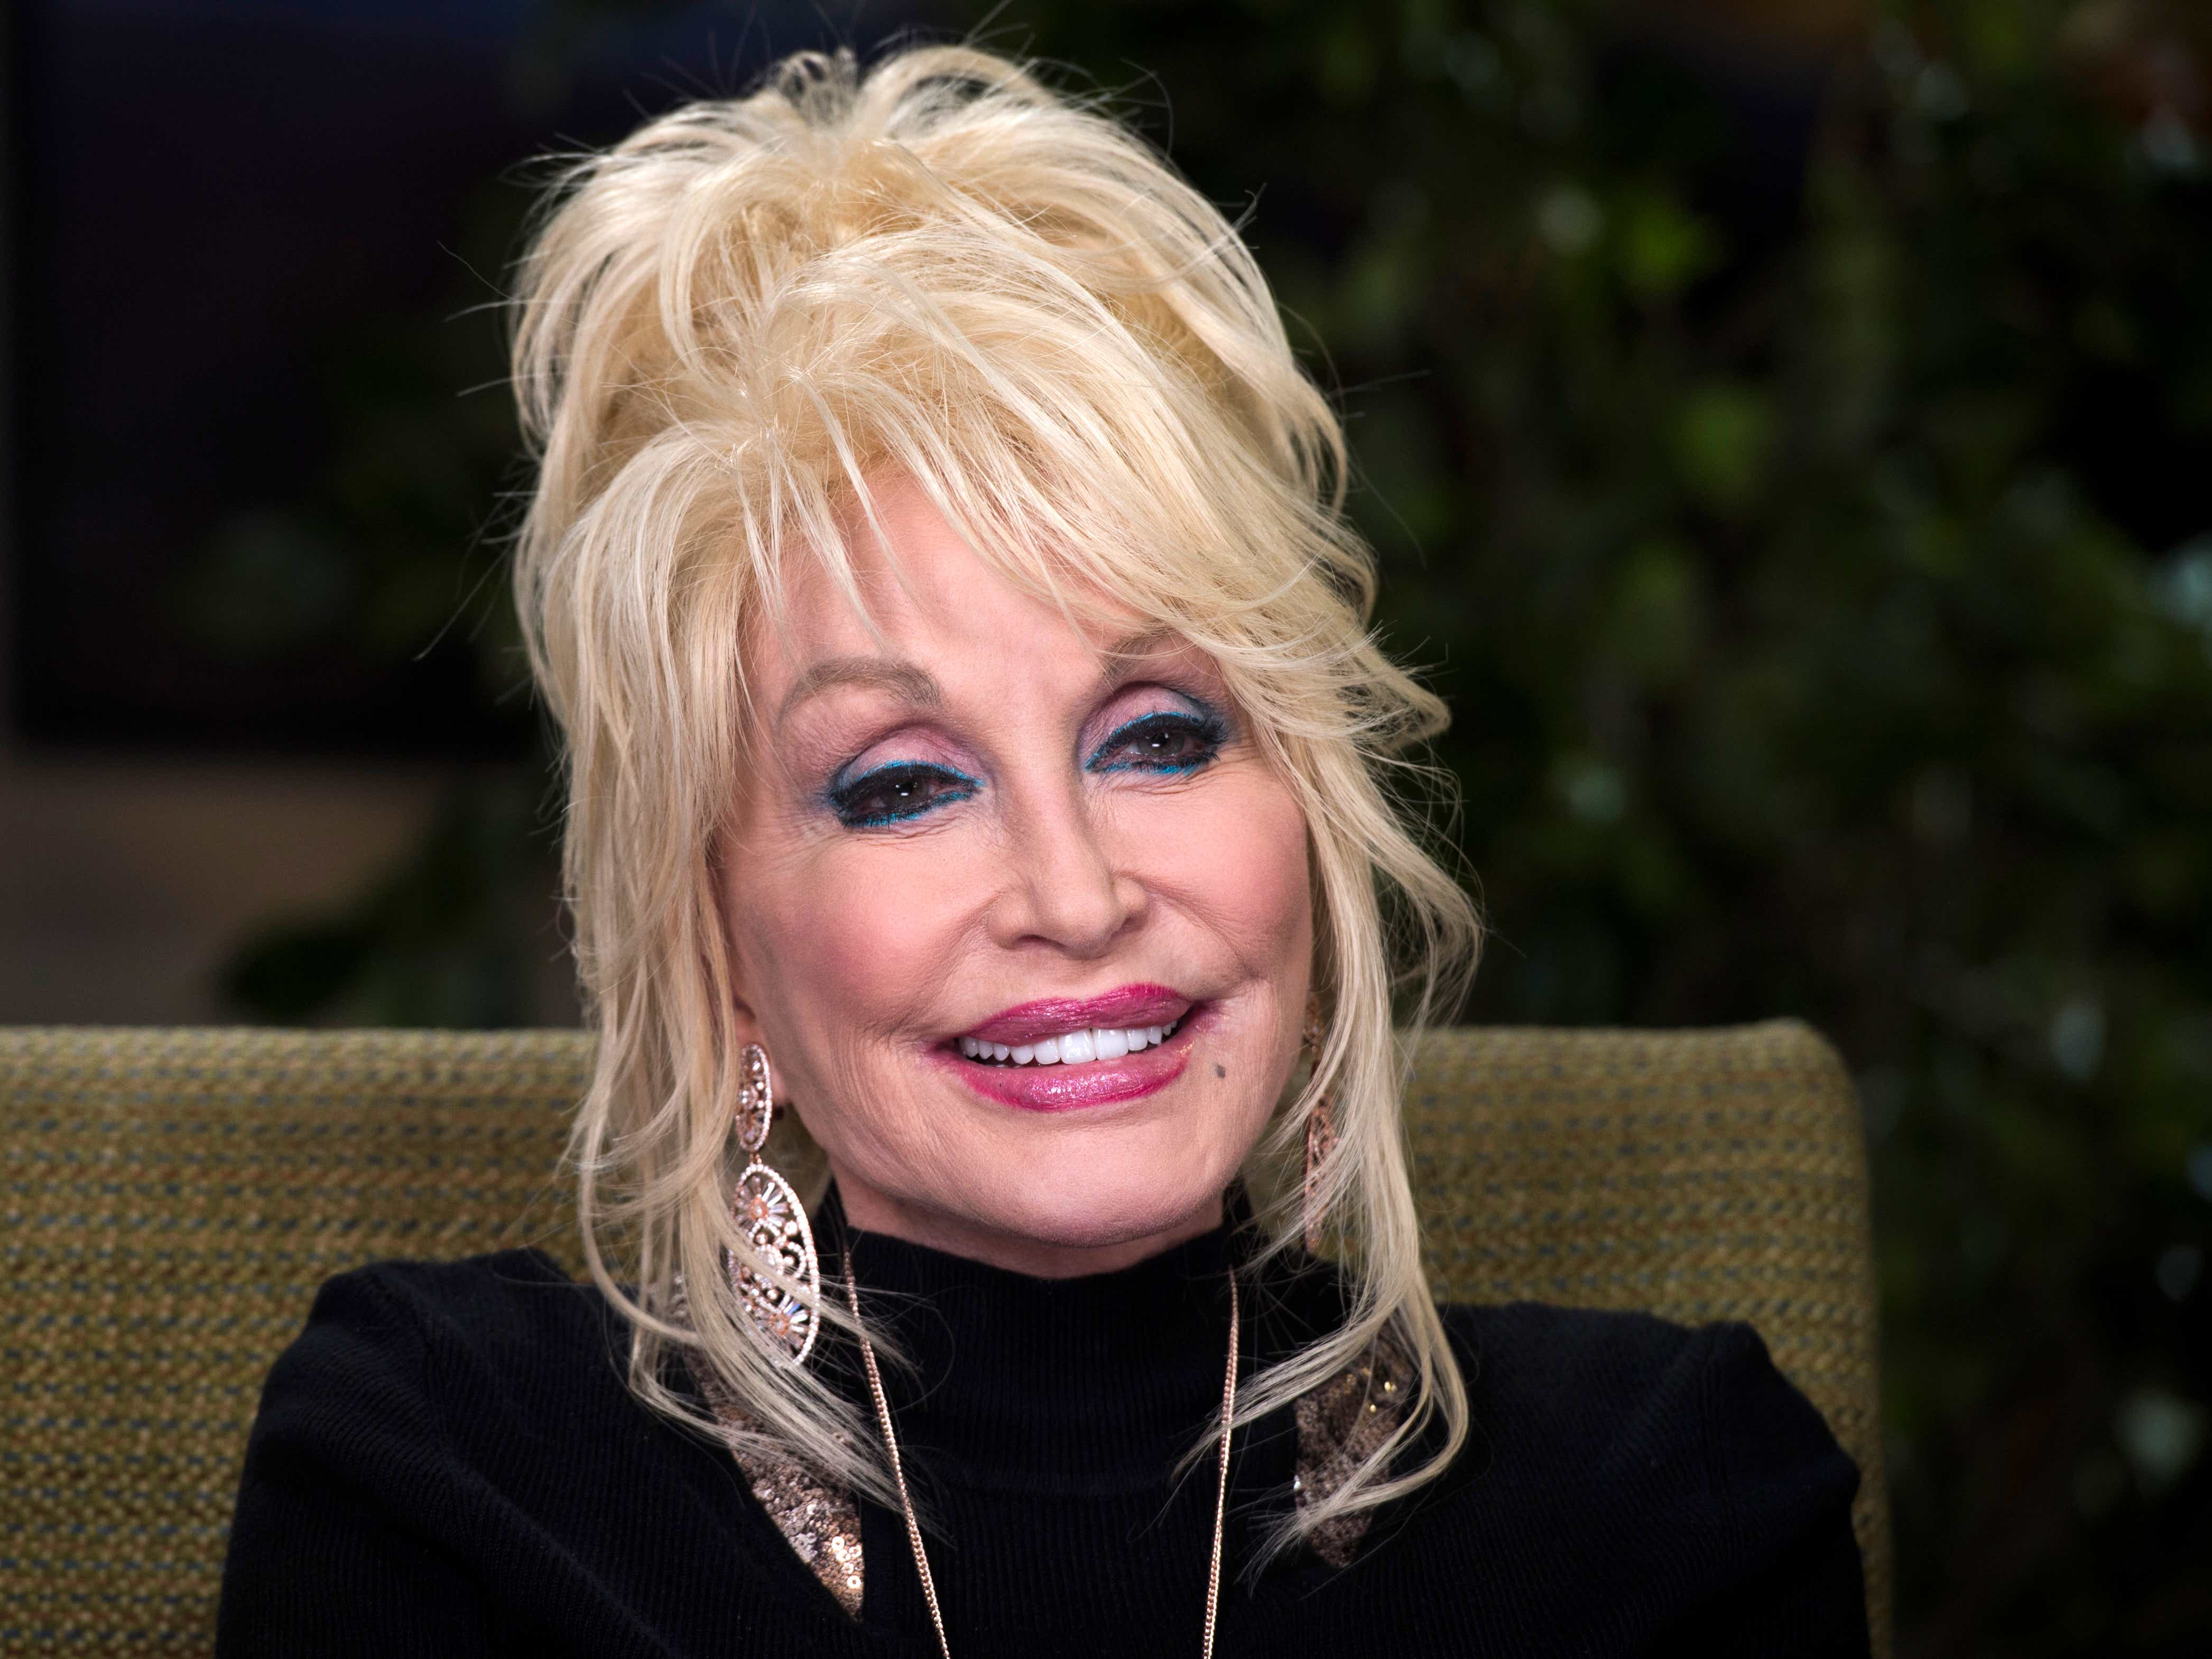 Dolly Parton Proud Of Recent Dollywood Theme Park Awards